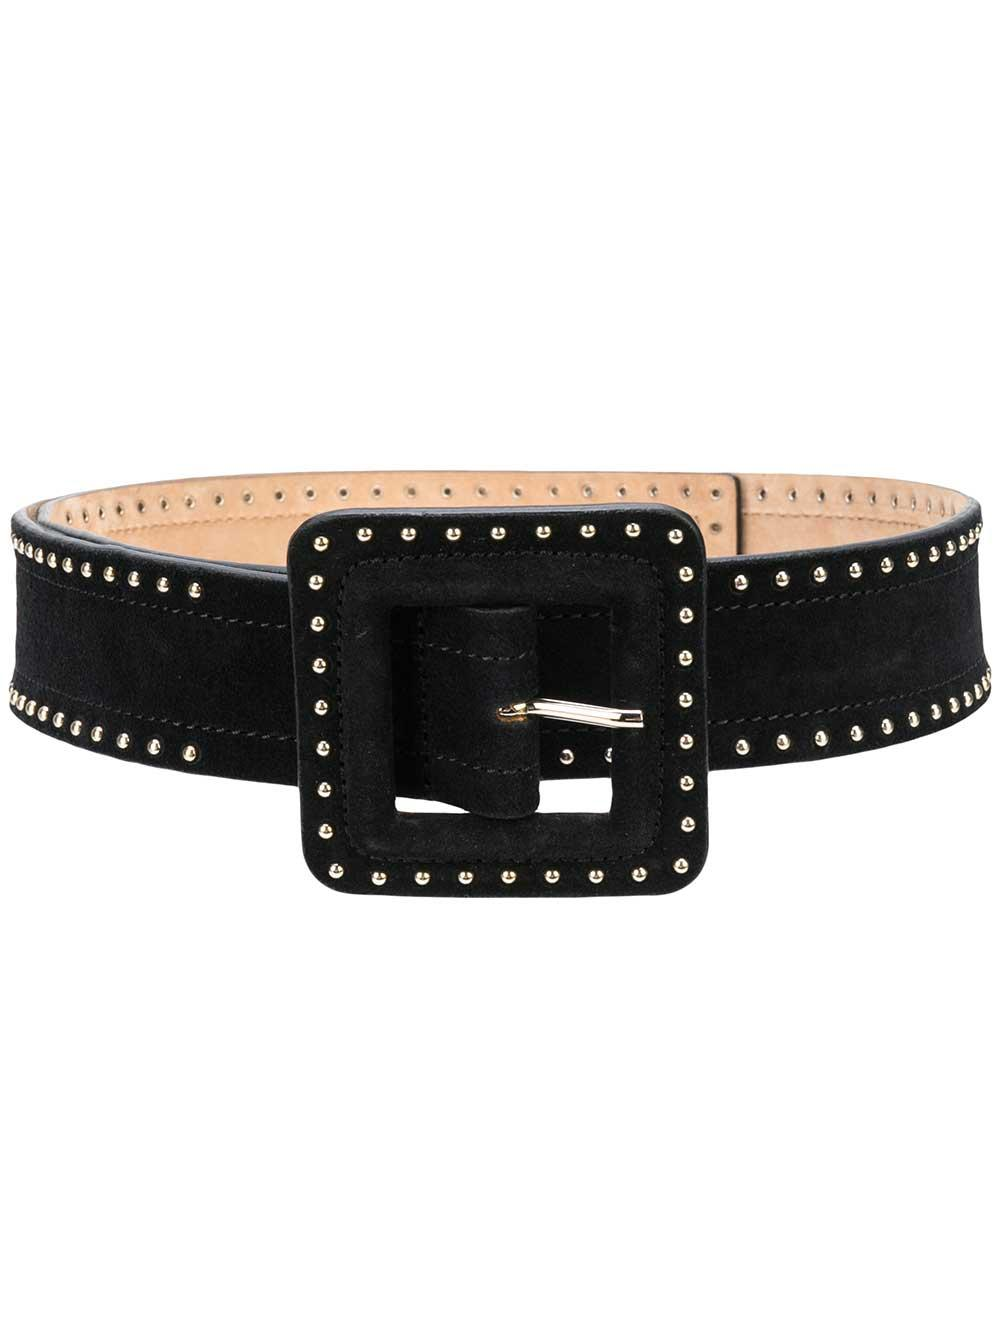 Aluma Suede Belt With Square Buckle